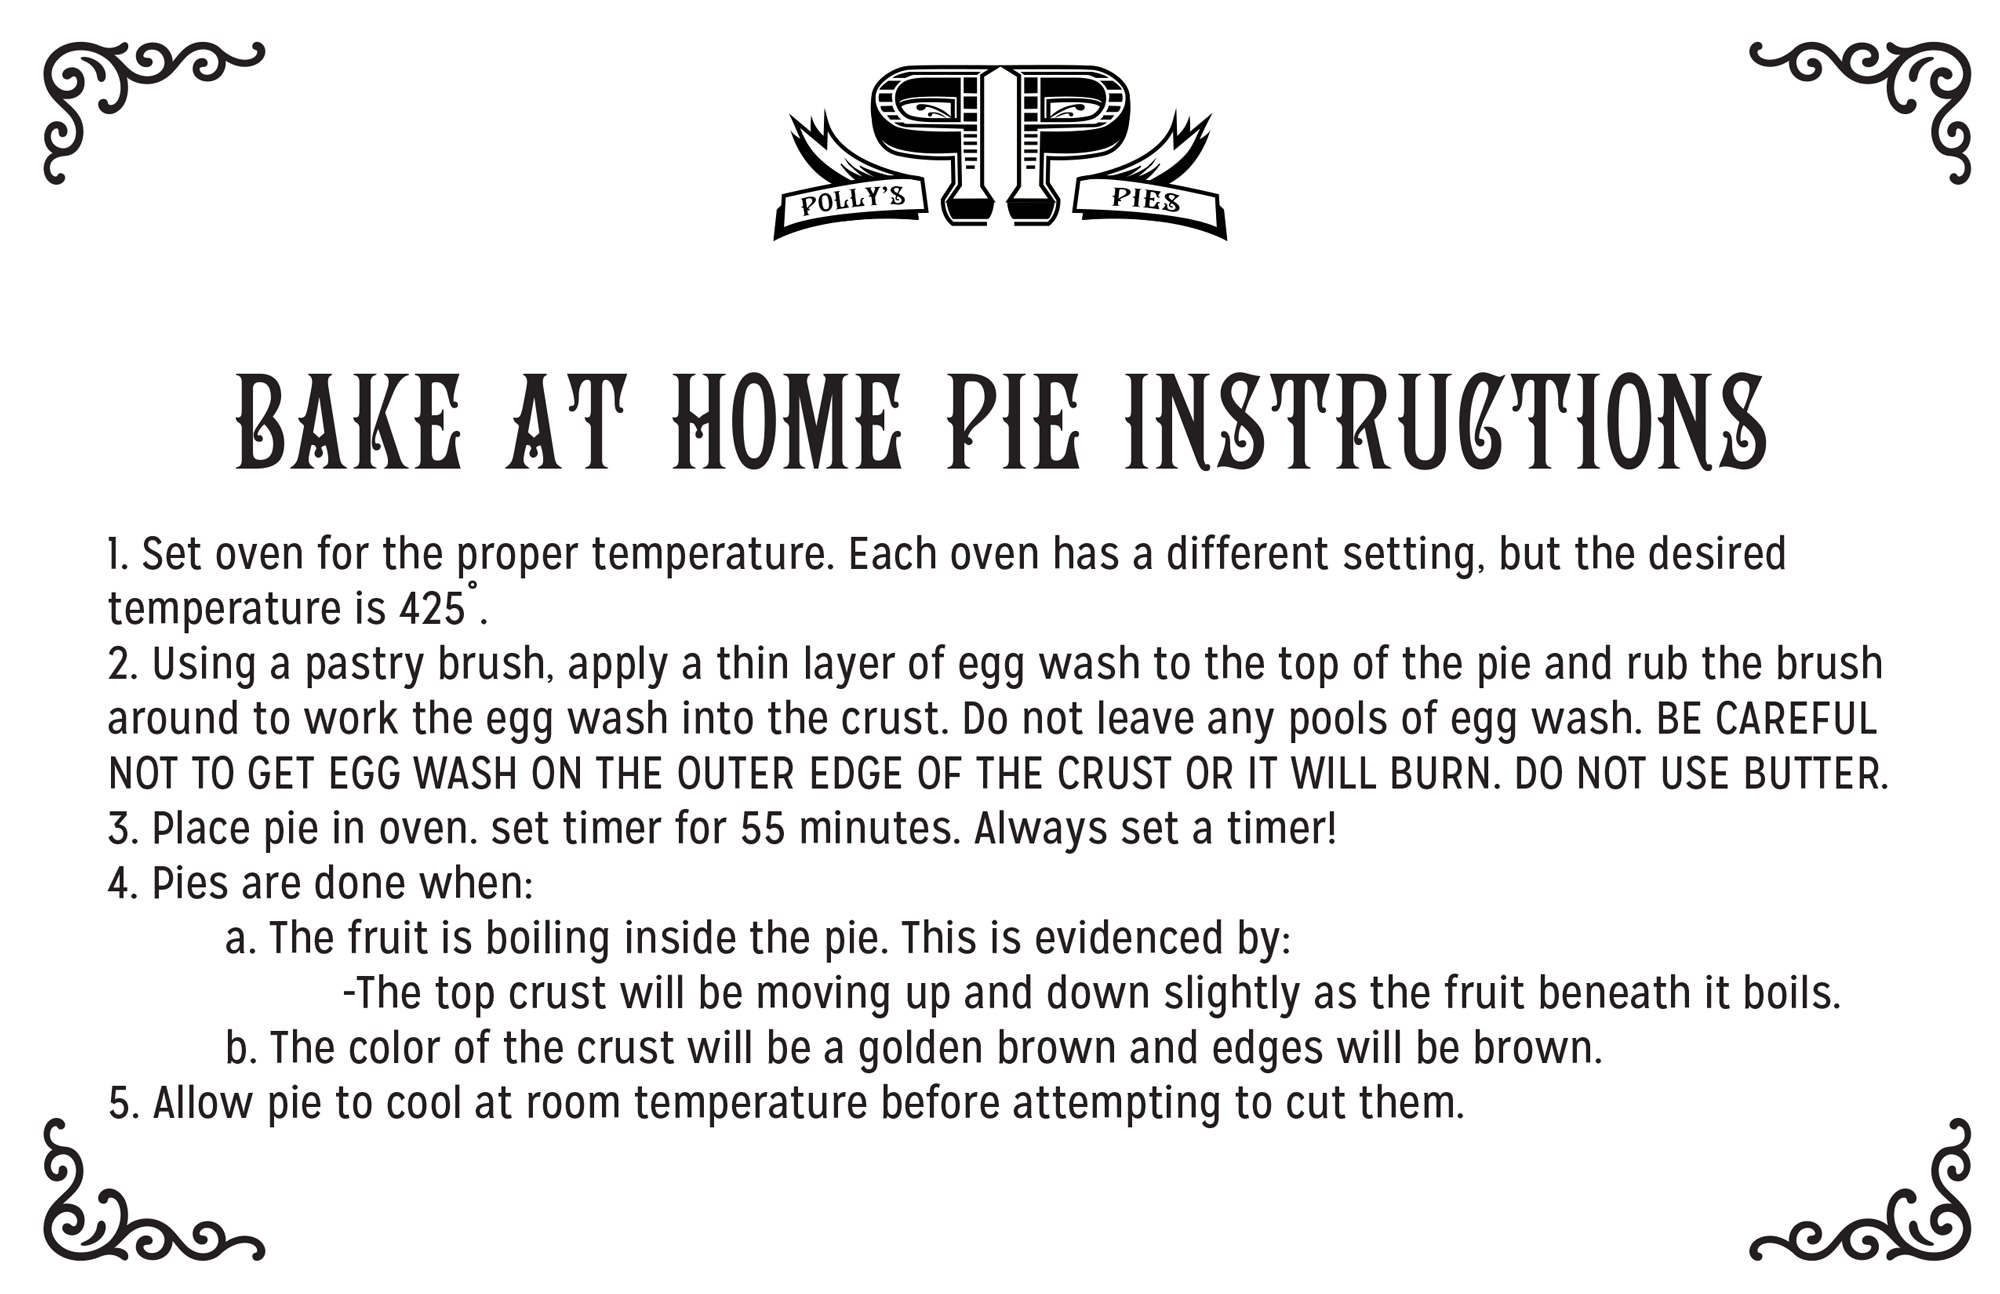 Quiche warming instructions 1